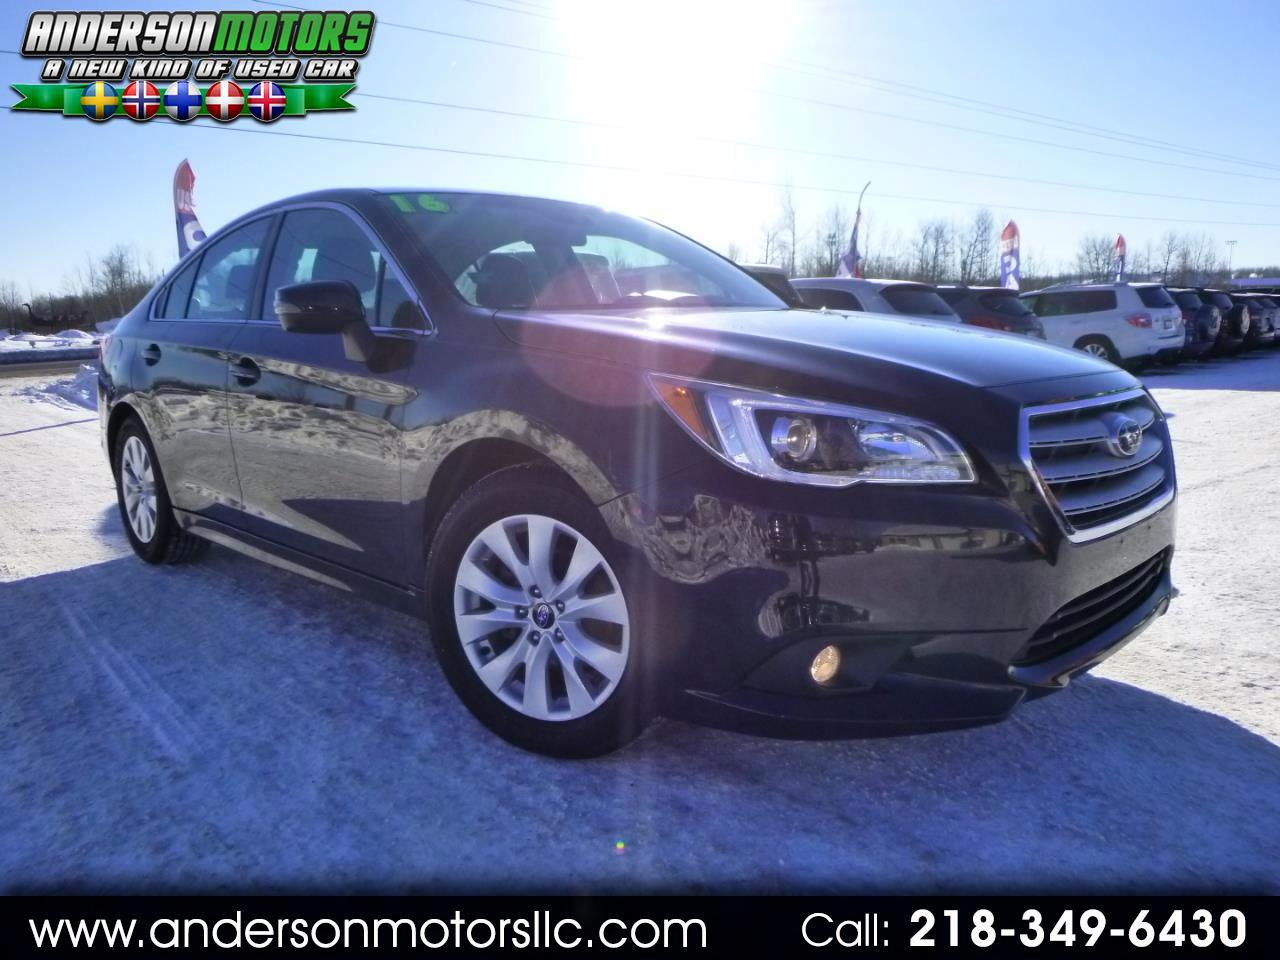 2016 Subaru Legacy 2.5i Premium w/Eyesight